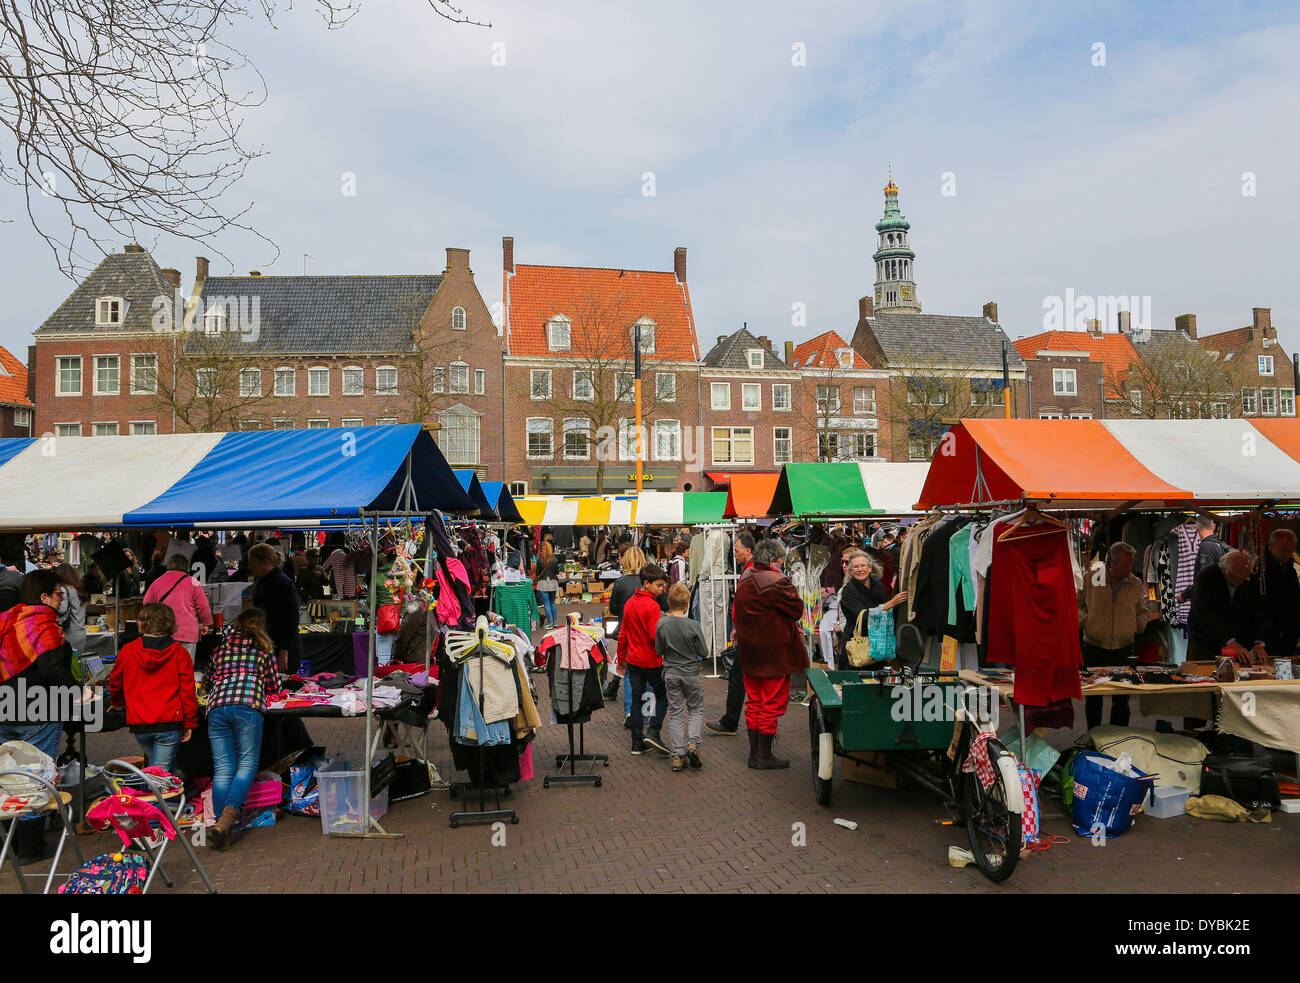 flea market on the main square of middelburg capital of zeeland stock photo 68483254 alamy. Black Bedroom Furniture Sets. Home Design Ideas